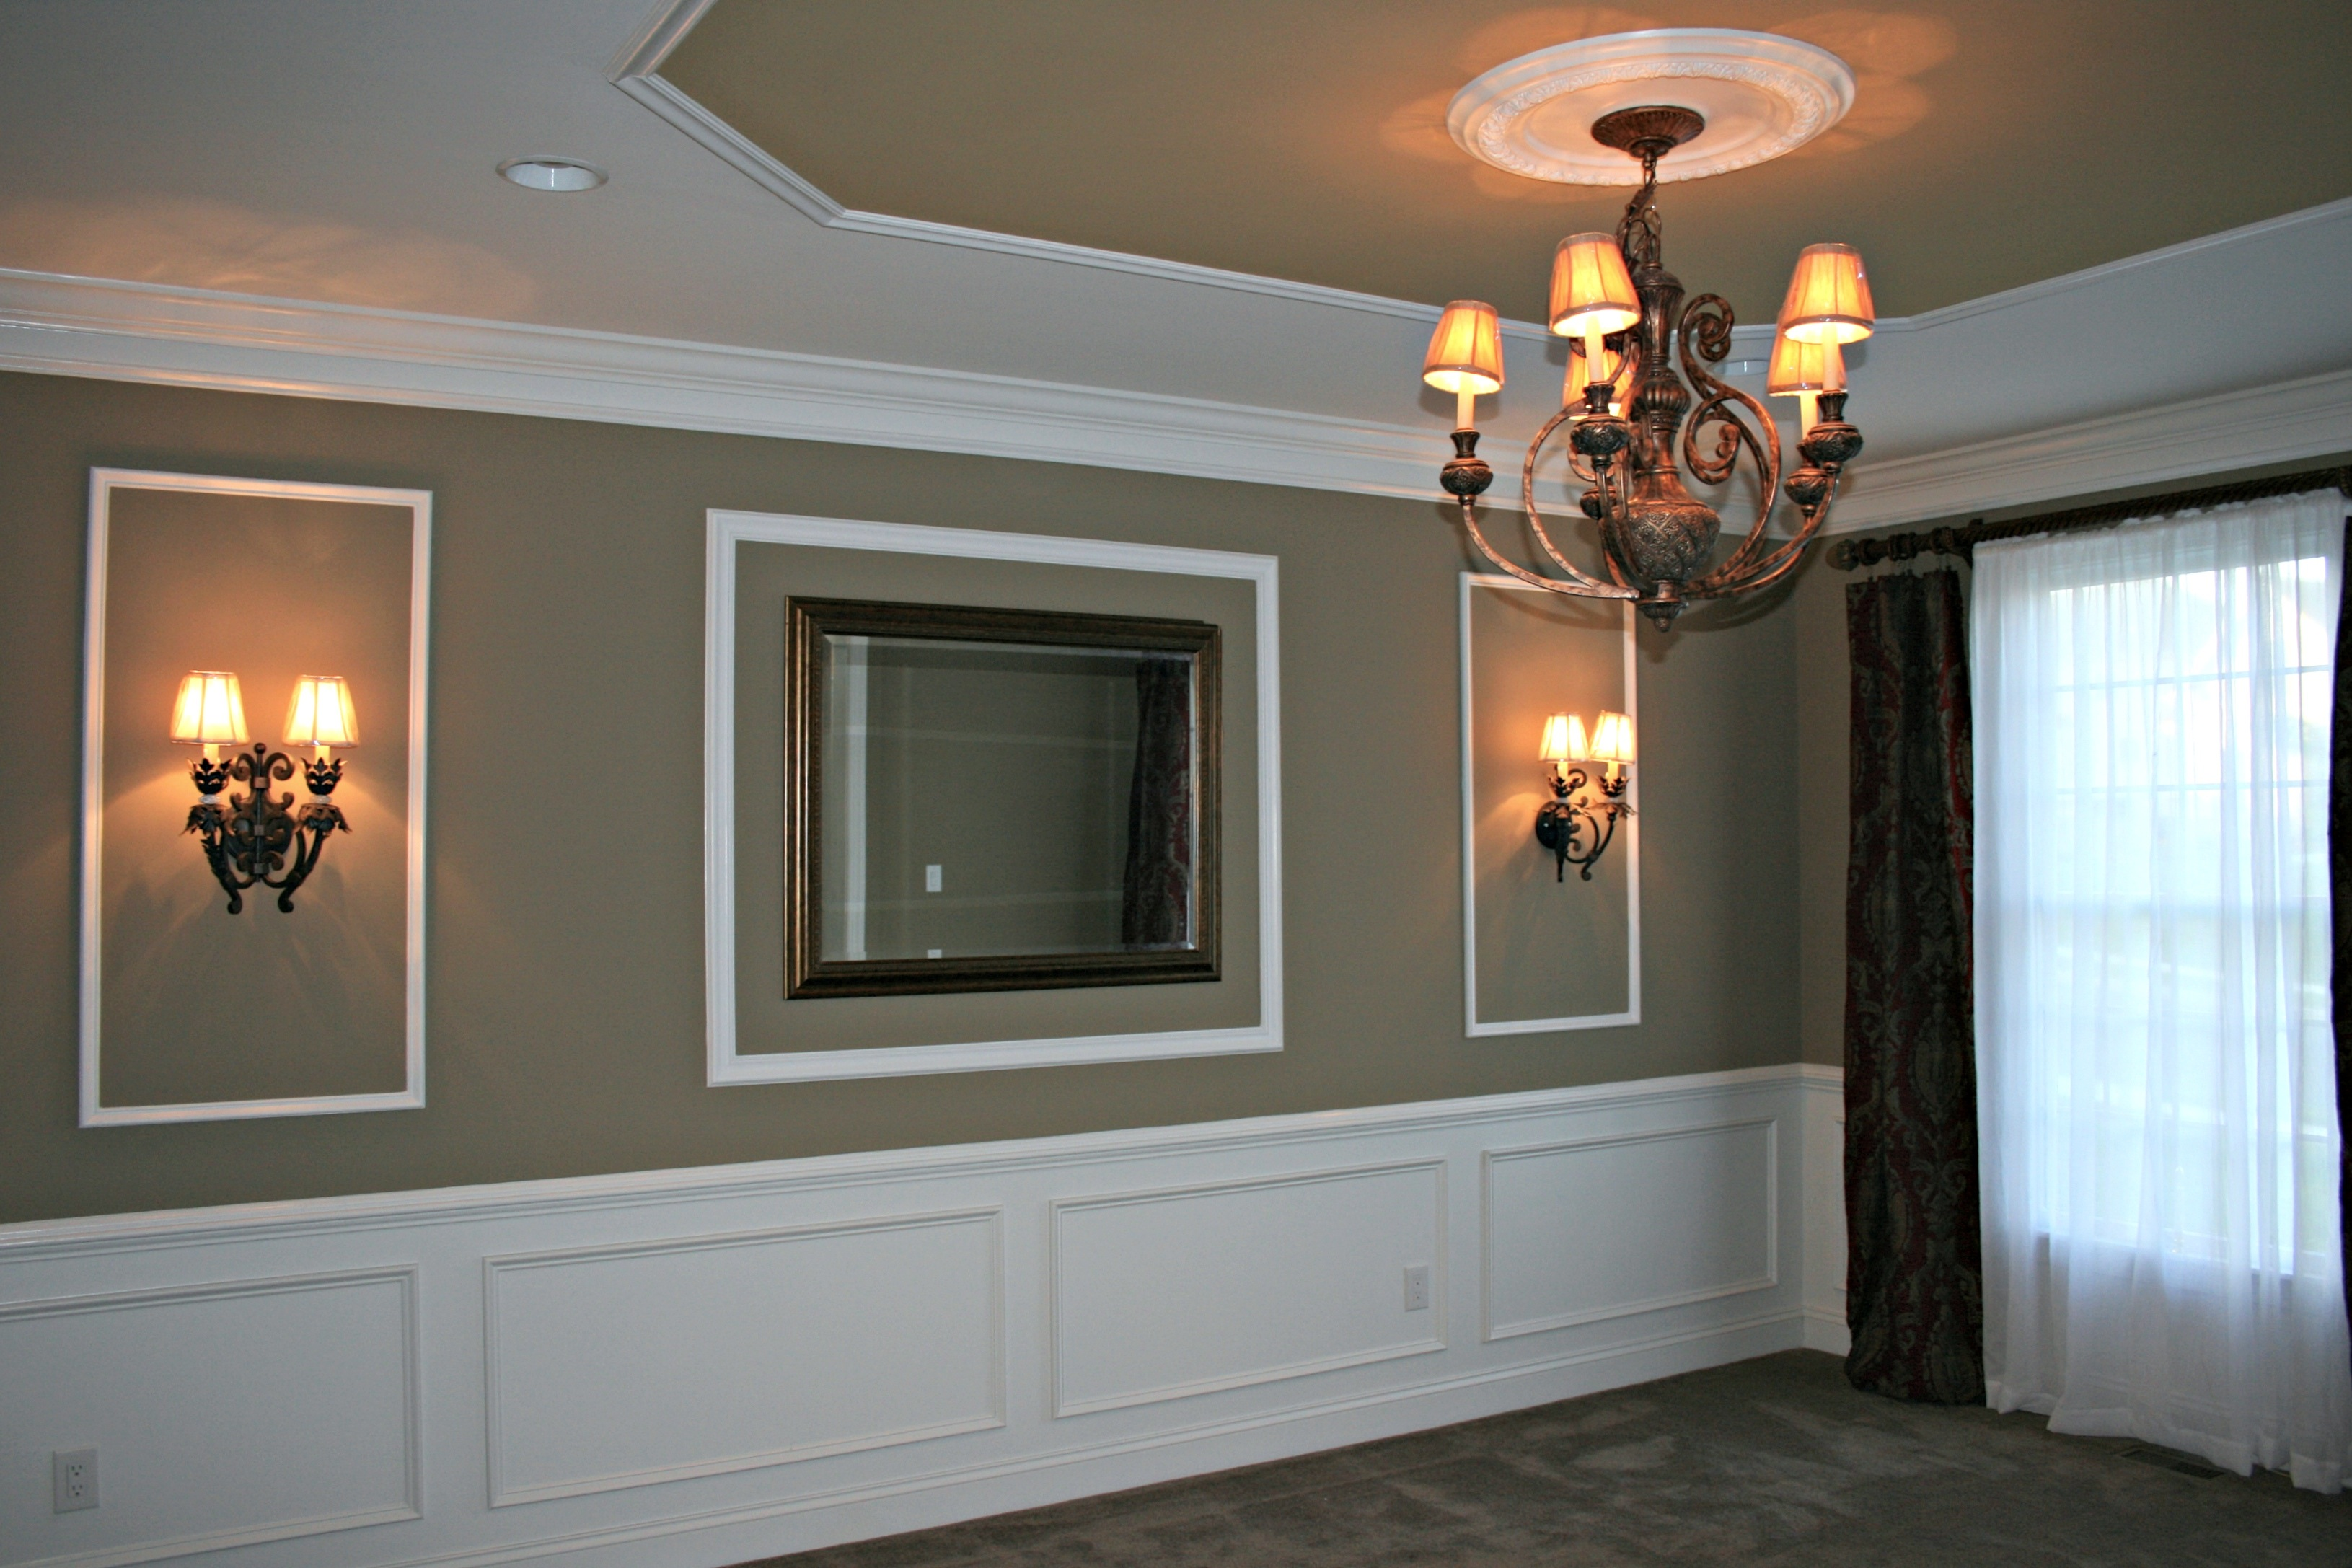 Wainscoting Installation By Deacon Home Enhancement